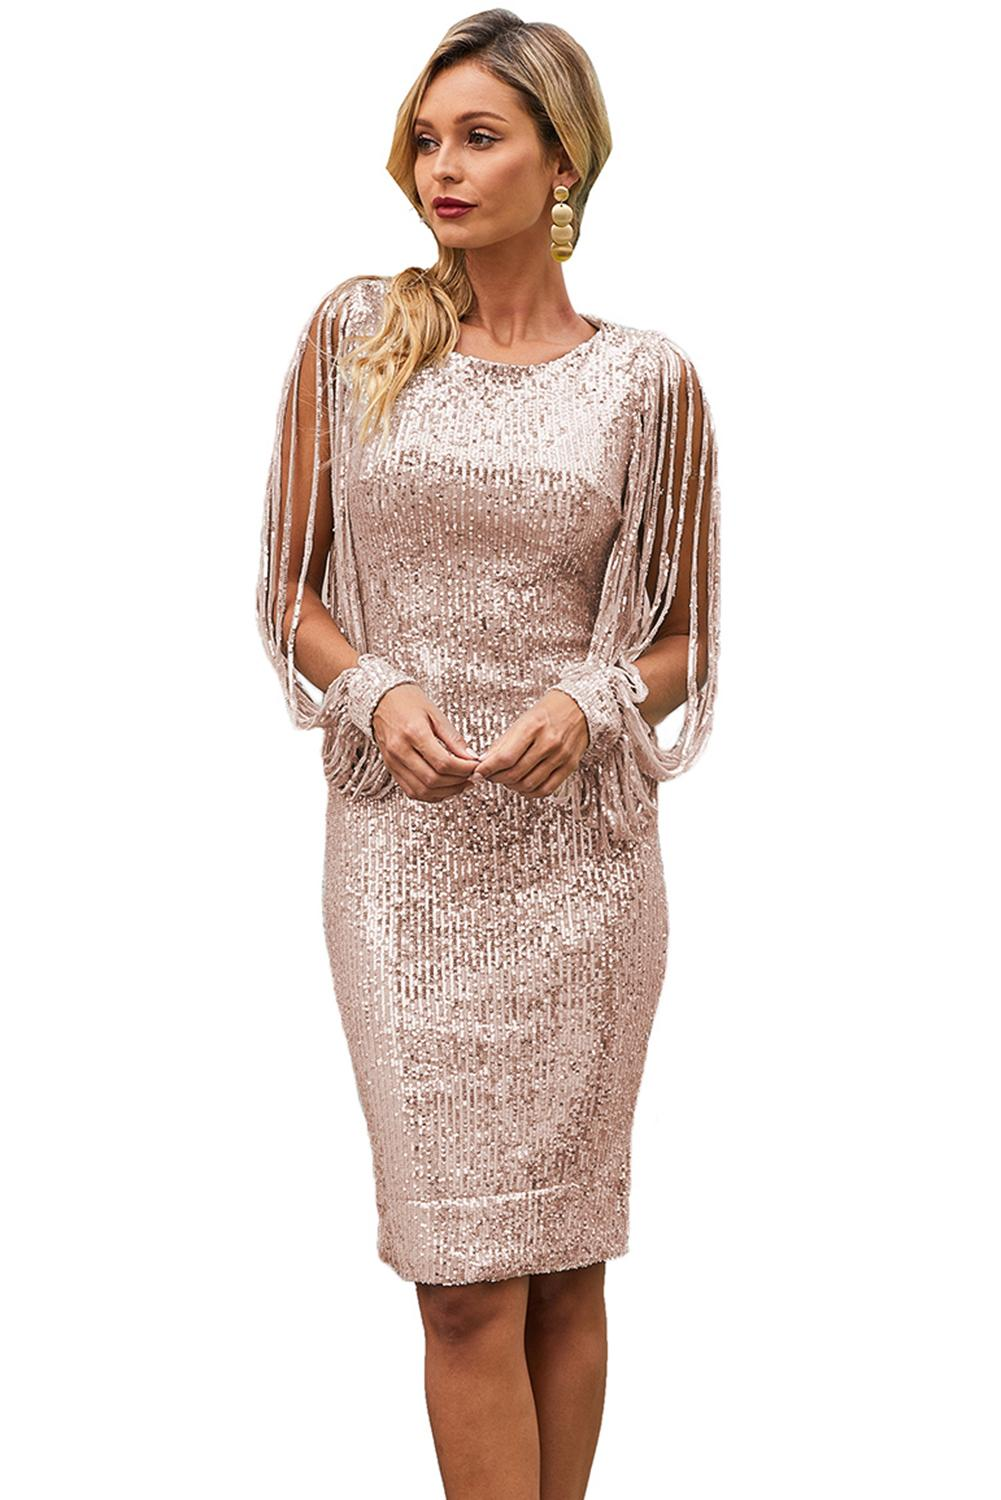 Nude Tassel Sleeve Sequined Cocktail Party Dress